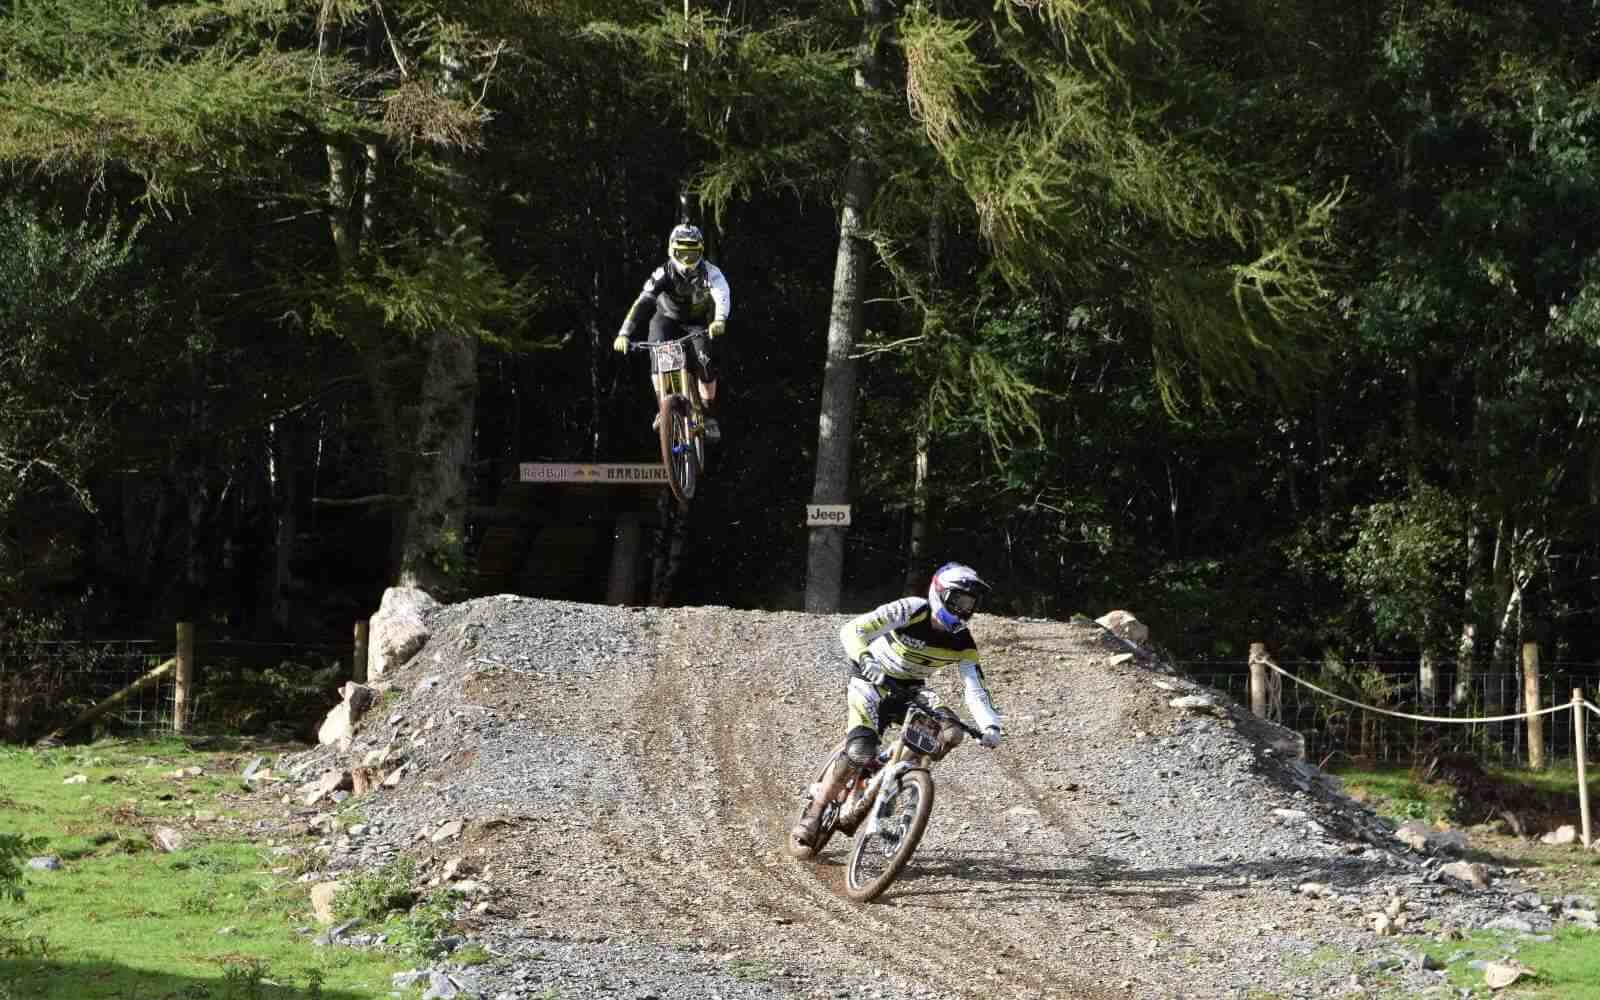 MTB downhill jumps bottom Red Bull Hardline 2015 copyright Luke Ryan